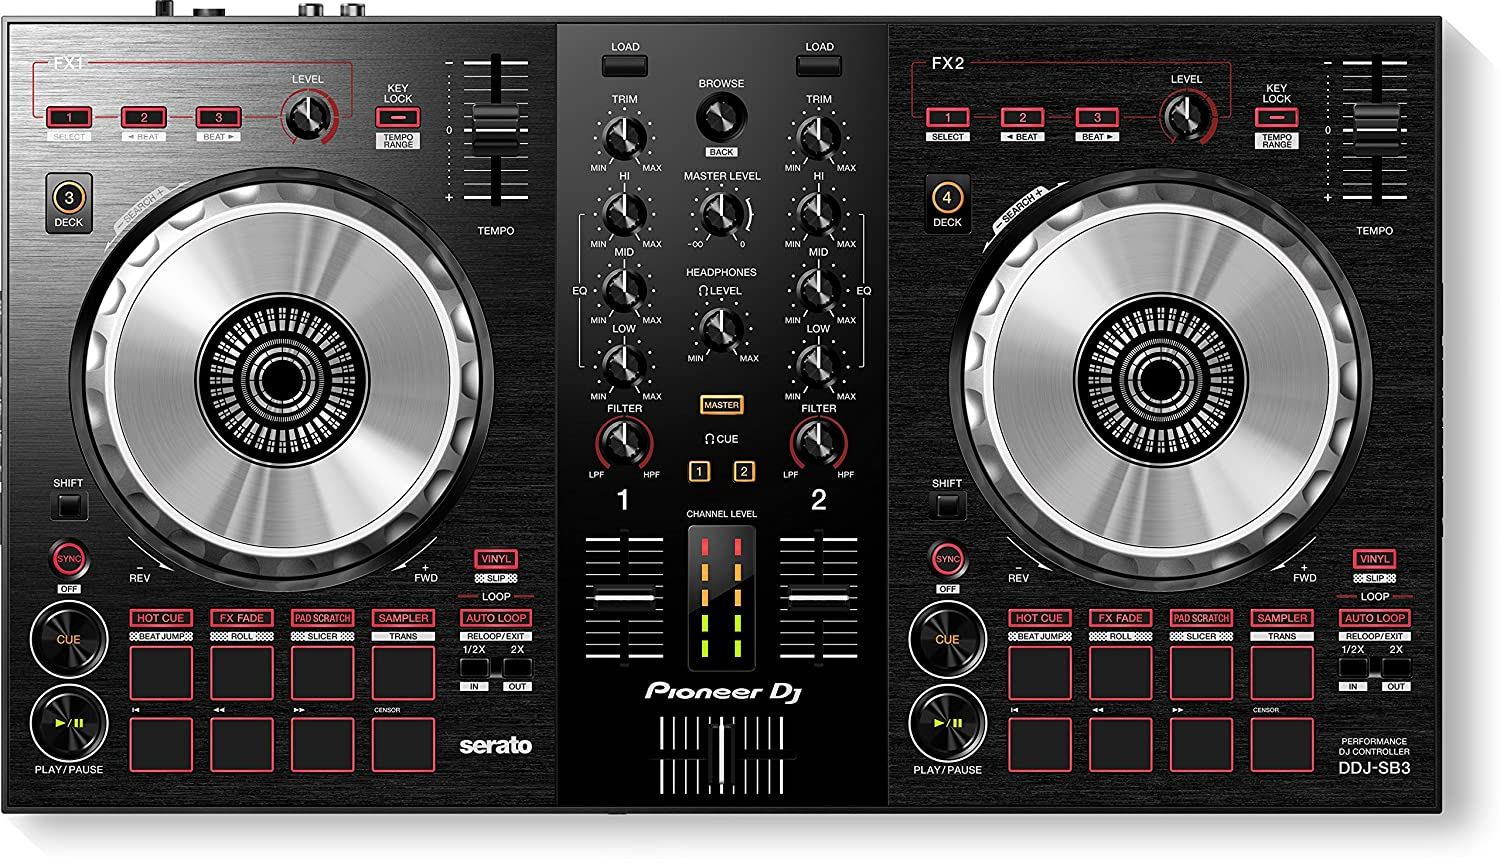 Pioneer DJ DDJ-SB3 DJ Controller Black Friday Deals 2020